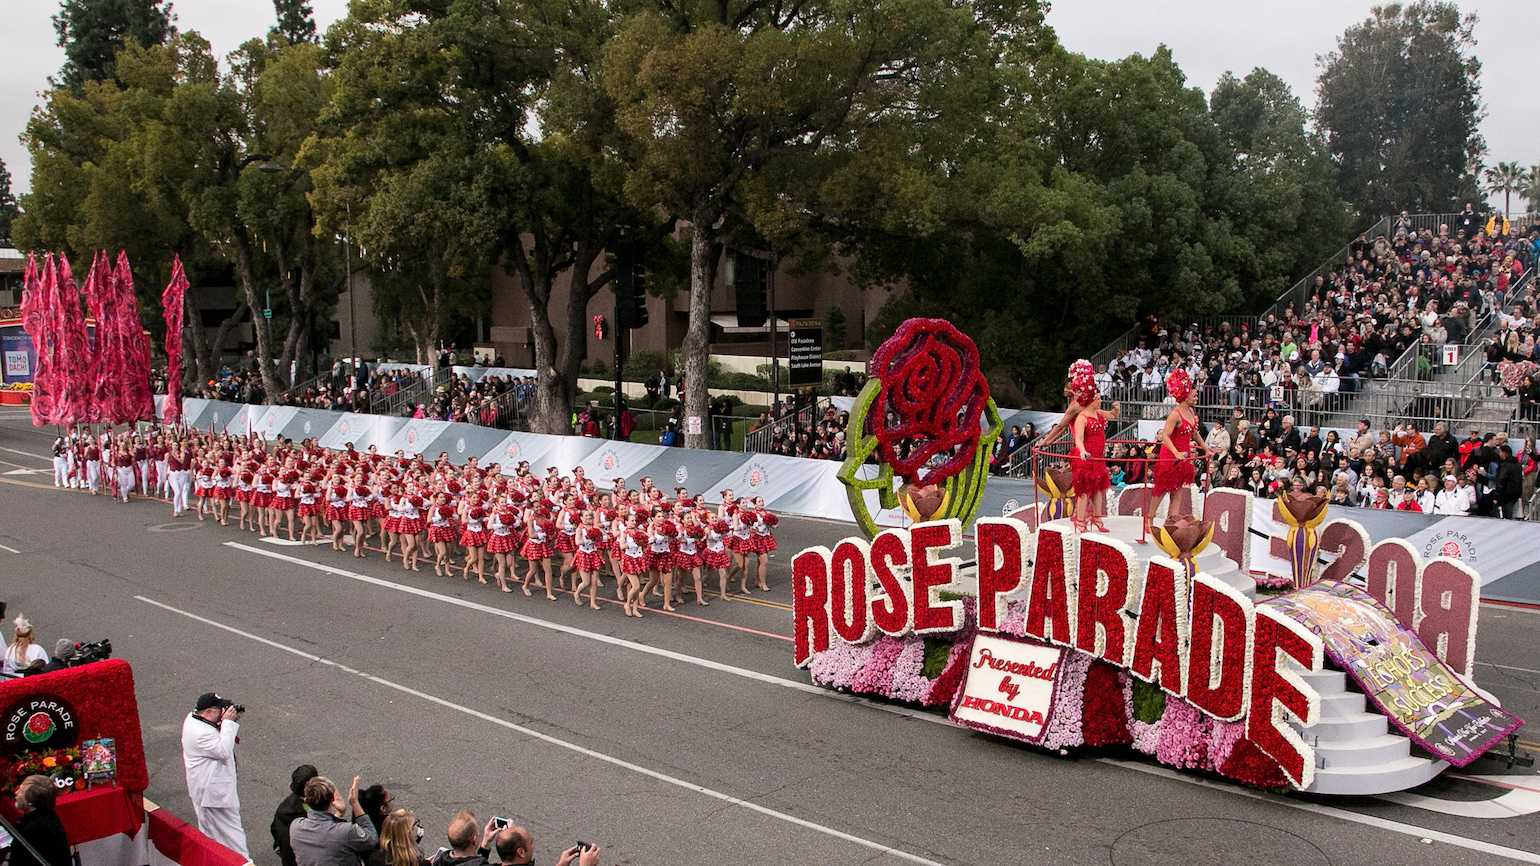 The official Rose Parade float appears at the 128th Tournament Of Roses Parade Presented By Honda on January 2, 2017 in Pasadena, California.